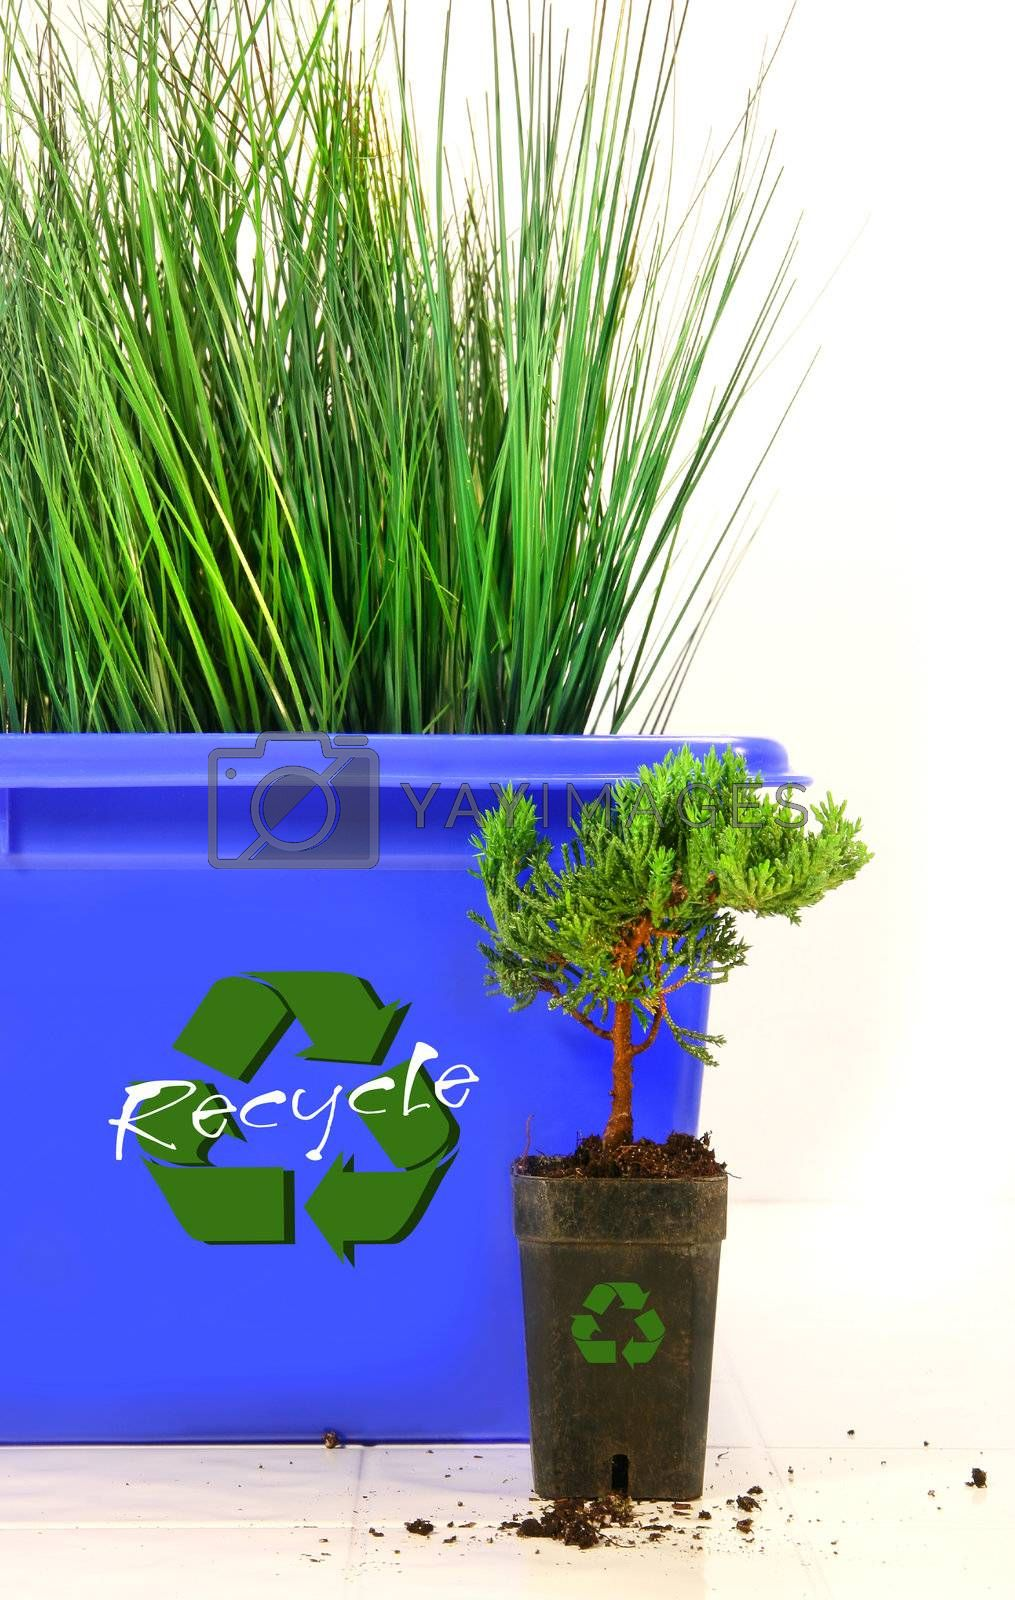 Tall grass inside recycle bin against wite background